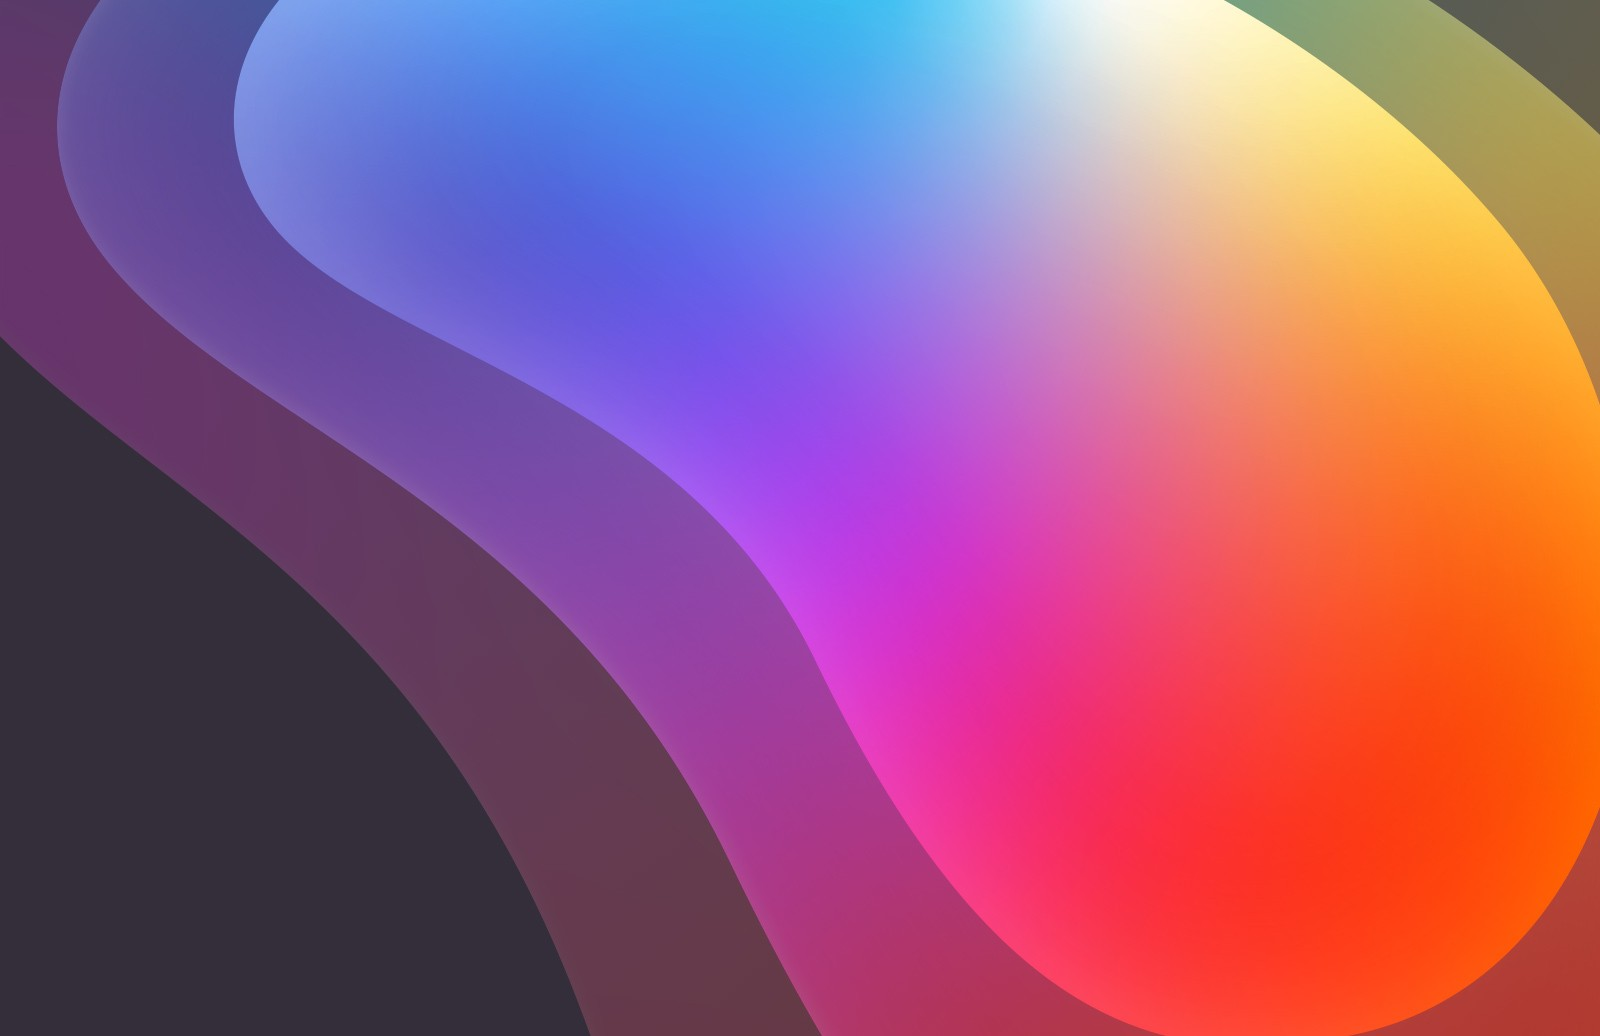 Abstract Fluid Gradient Backgrounds Preview 1